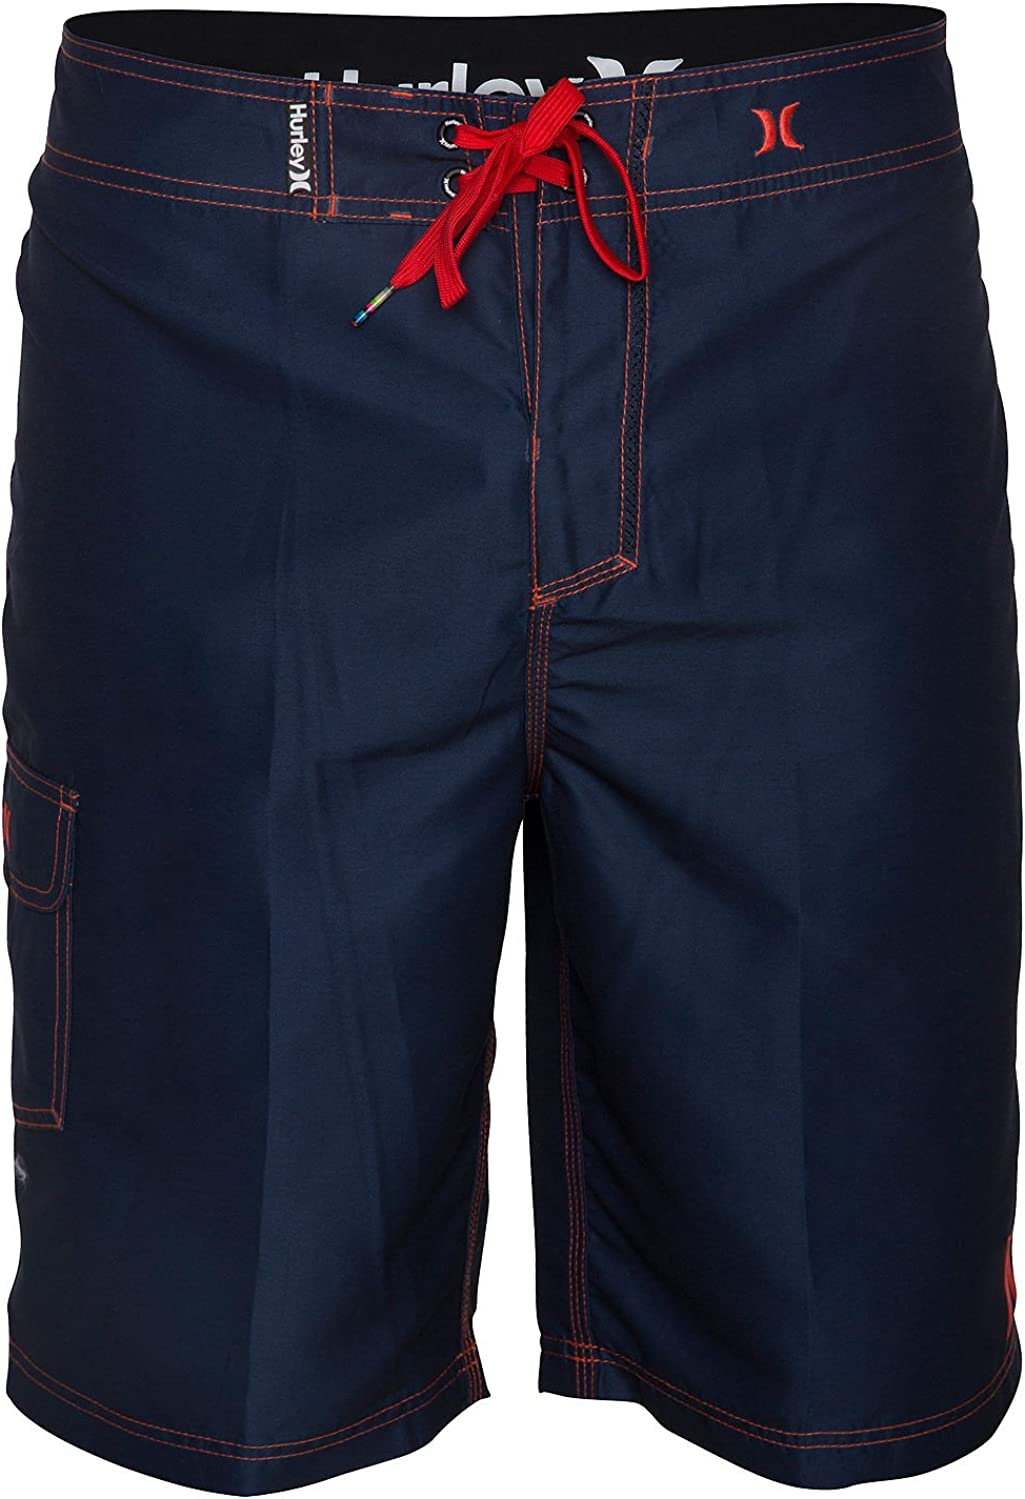 Hurley mens One & Only Boardshort 22